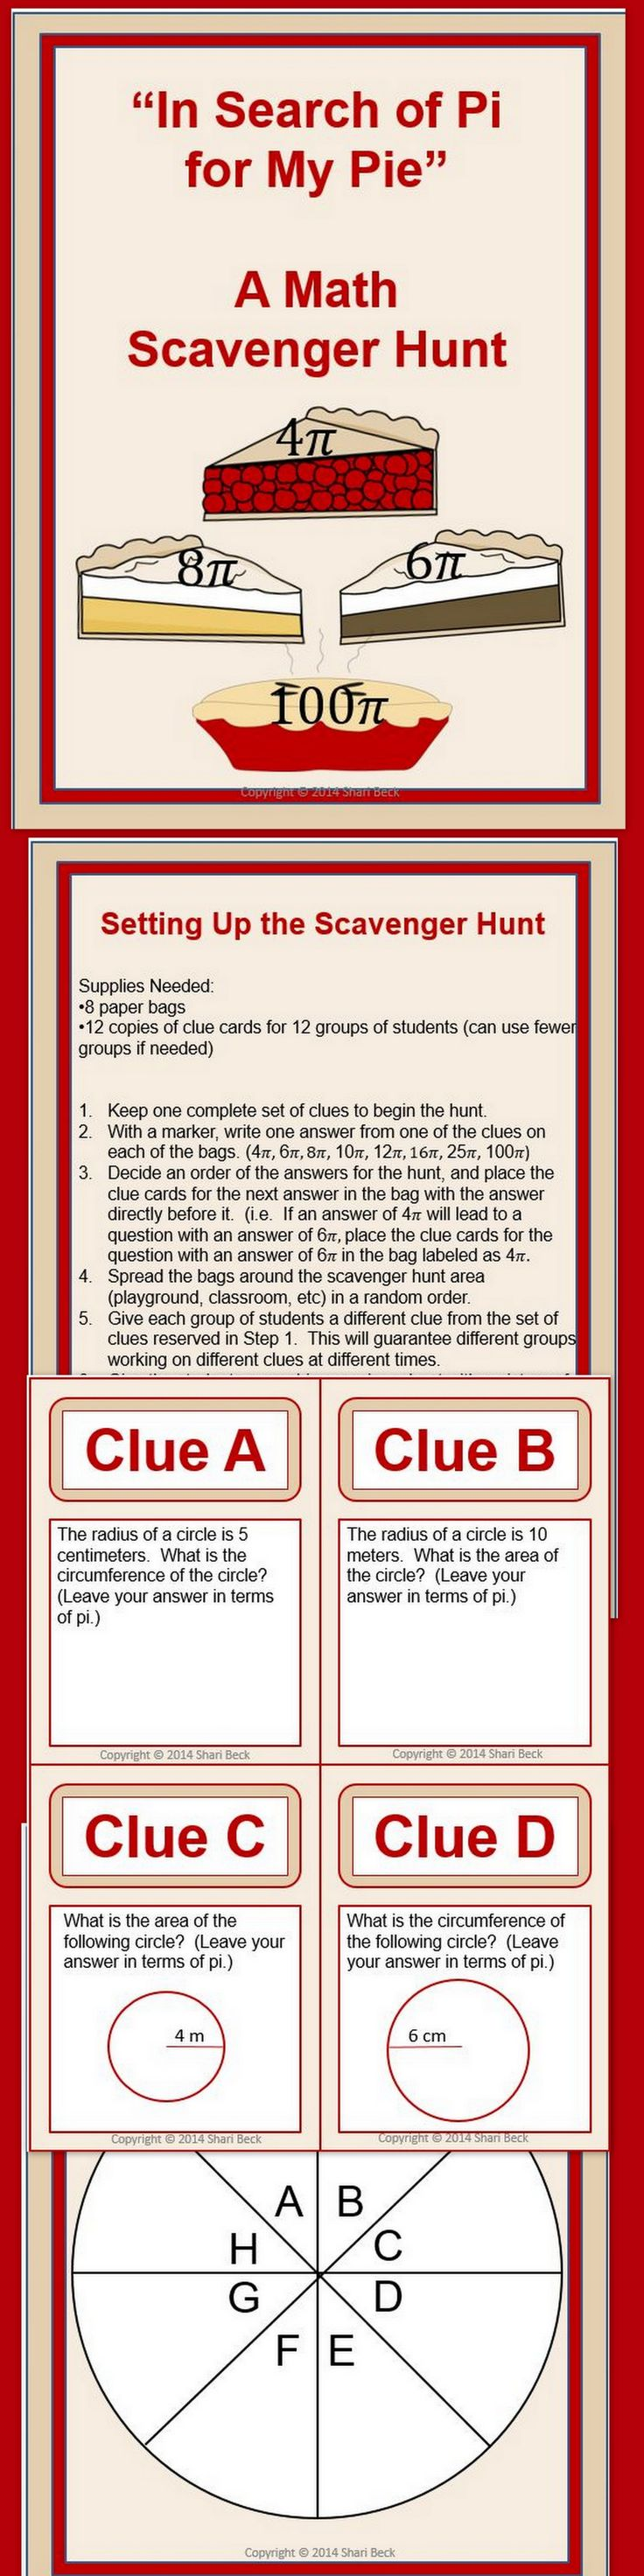 Uncategorized Math Scavenger Hunt Worksheet 25 best ideas about school scavenger hunts on pinterest student celebrate national pi day with a hunt in search of for my